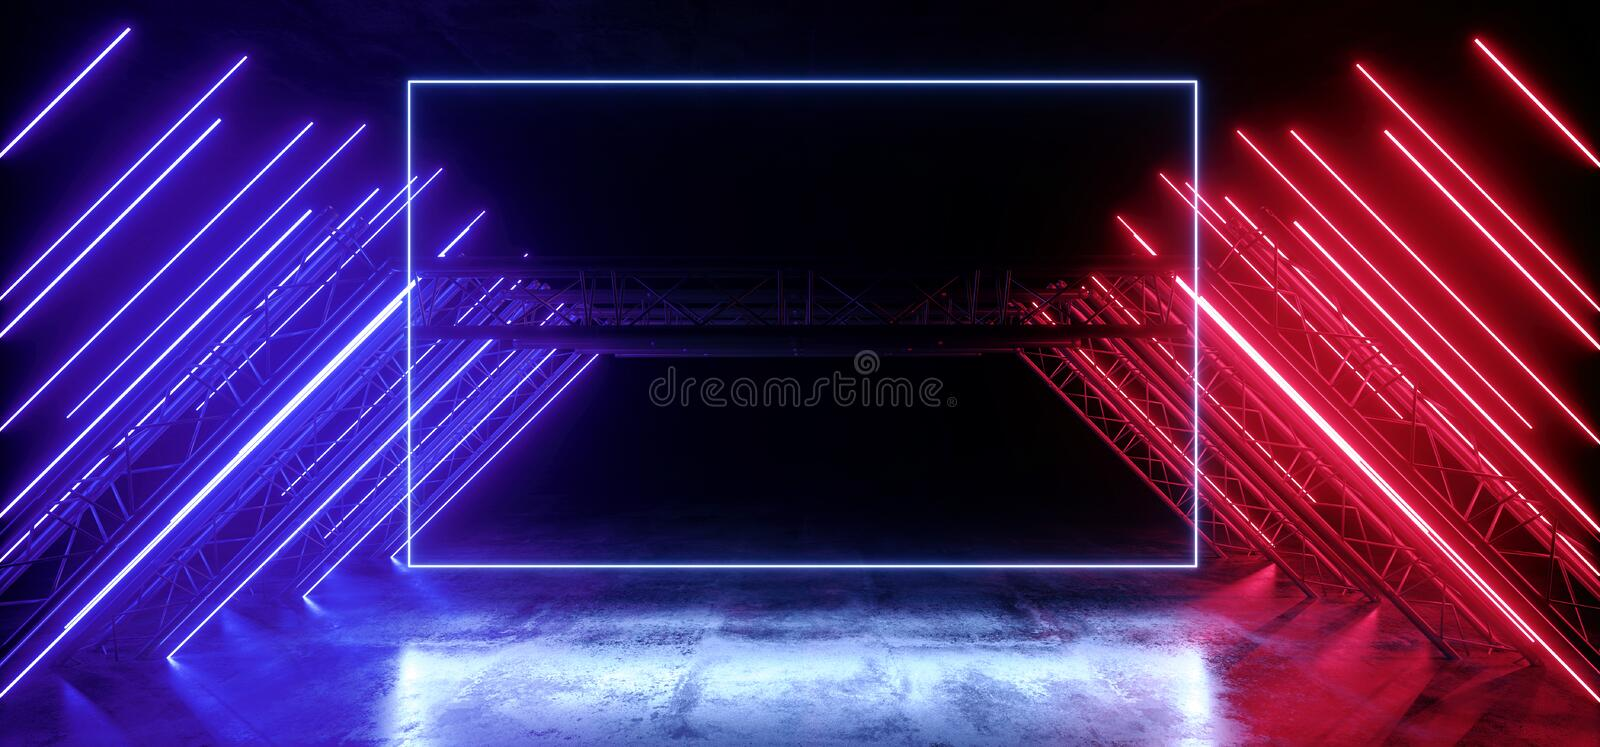 Neon Glowing Red Blue Violet Vibrant Sci Fi Futuristic Stage Podium Construction Metal Triangle Concrete Grunge Reflective Dark. Night Virtual Show Background royalty free illustration